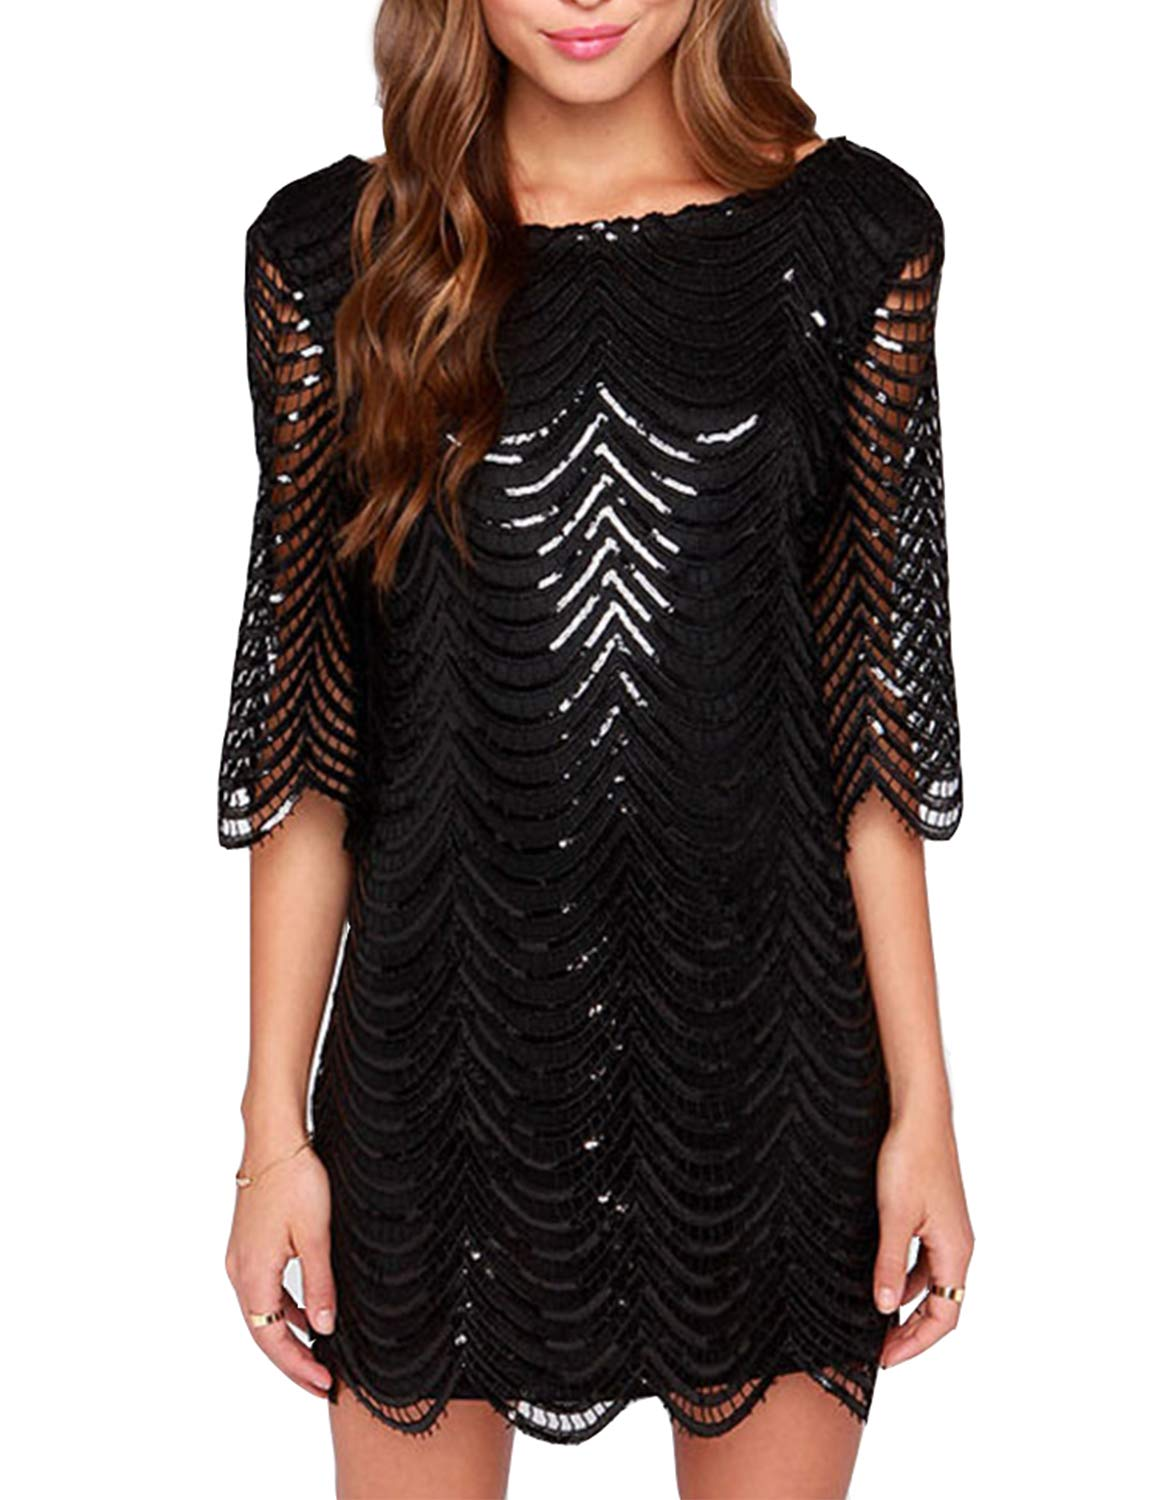 ASMAX HaoDuoYi Womens Sparkle Sequin Lace Hollow Out Half Sleeves Mini 1920's Party Dress